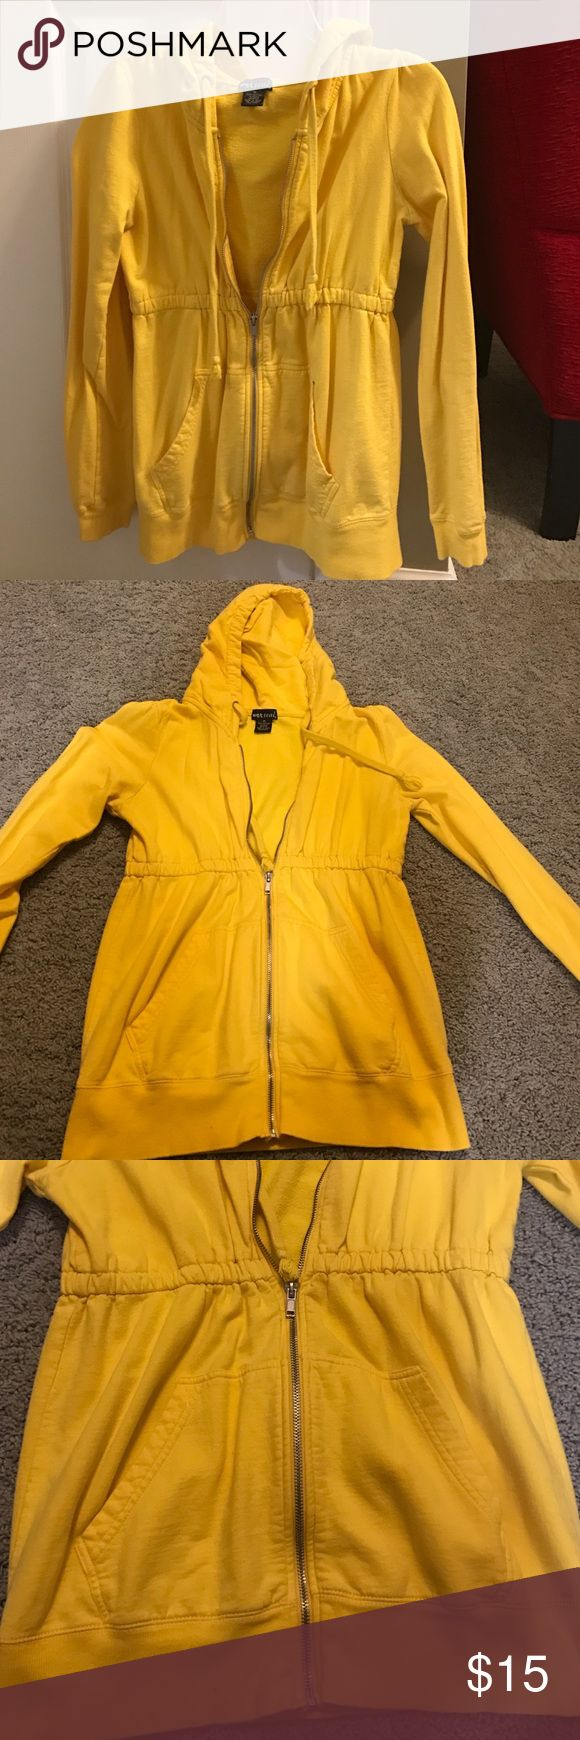 Wet seal yellow zip up jacket Yellow, zips all the way, pockets on front, hood, cinched at waist, size medium Wet Seal Jackets & Coats